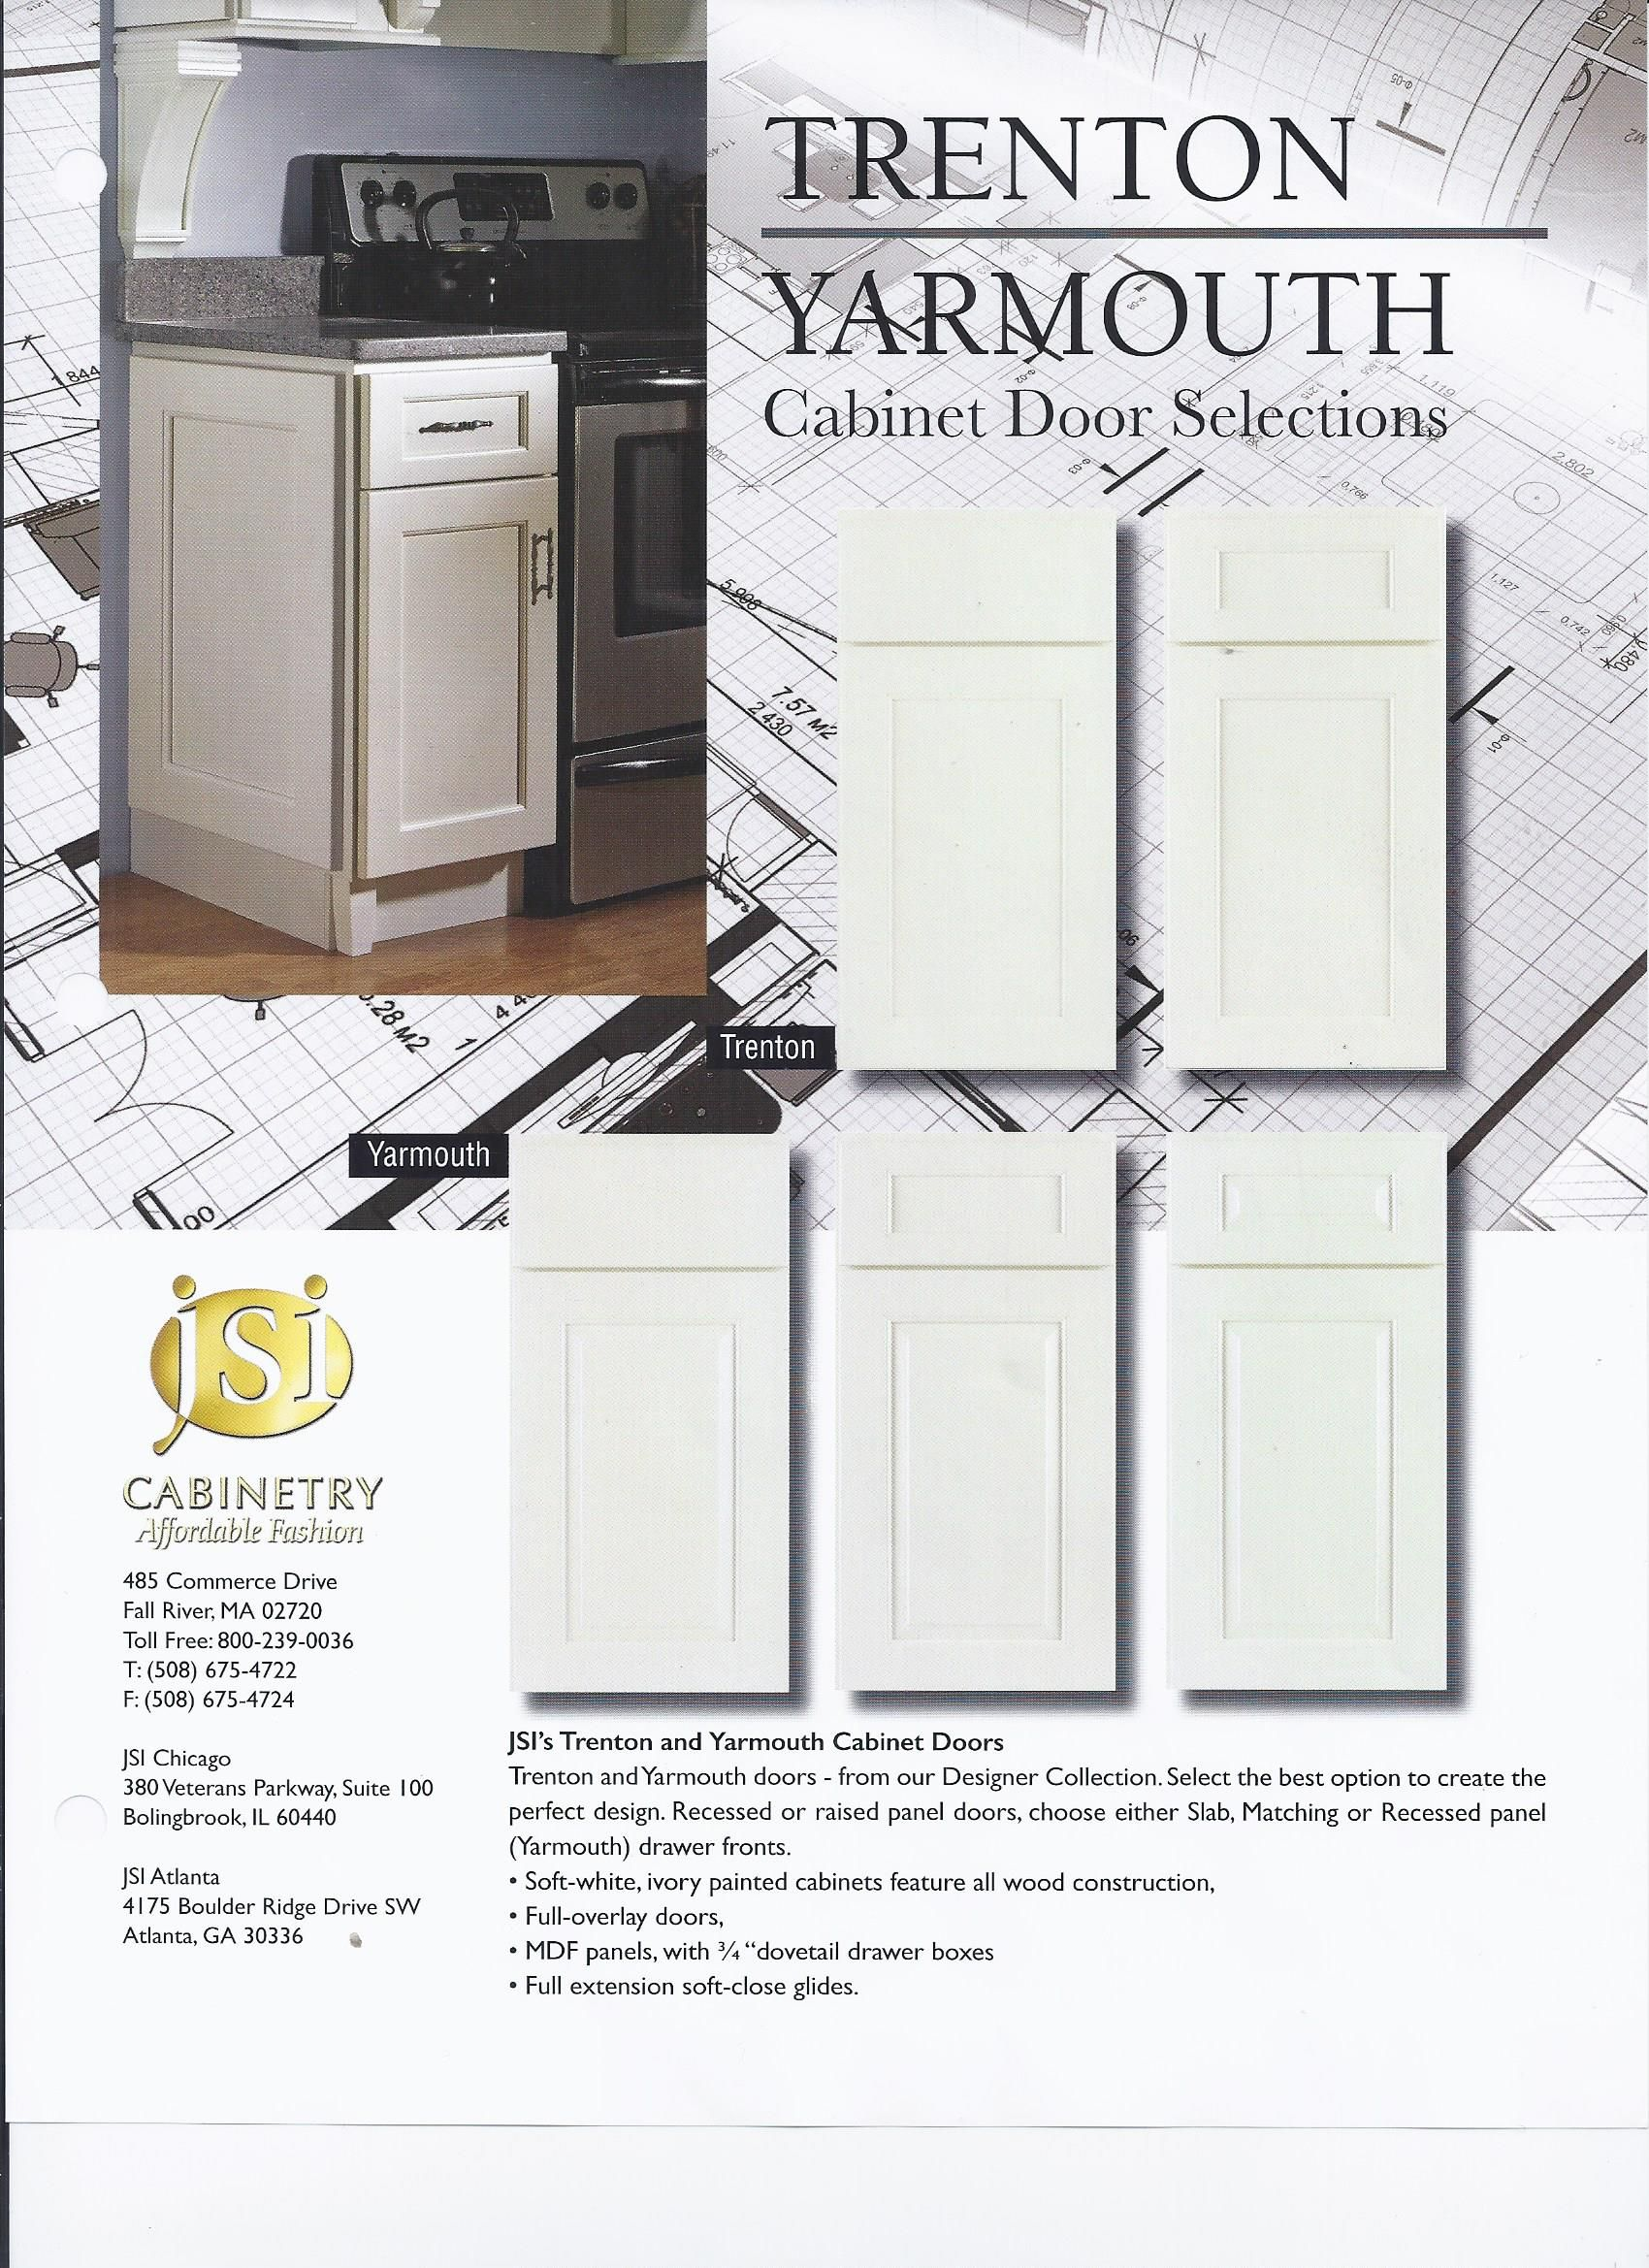 New Kitchen Cabinet Lines from JSI Cabinetry  Cabinets